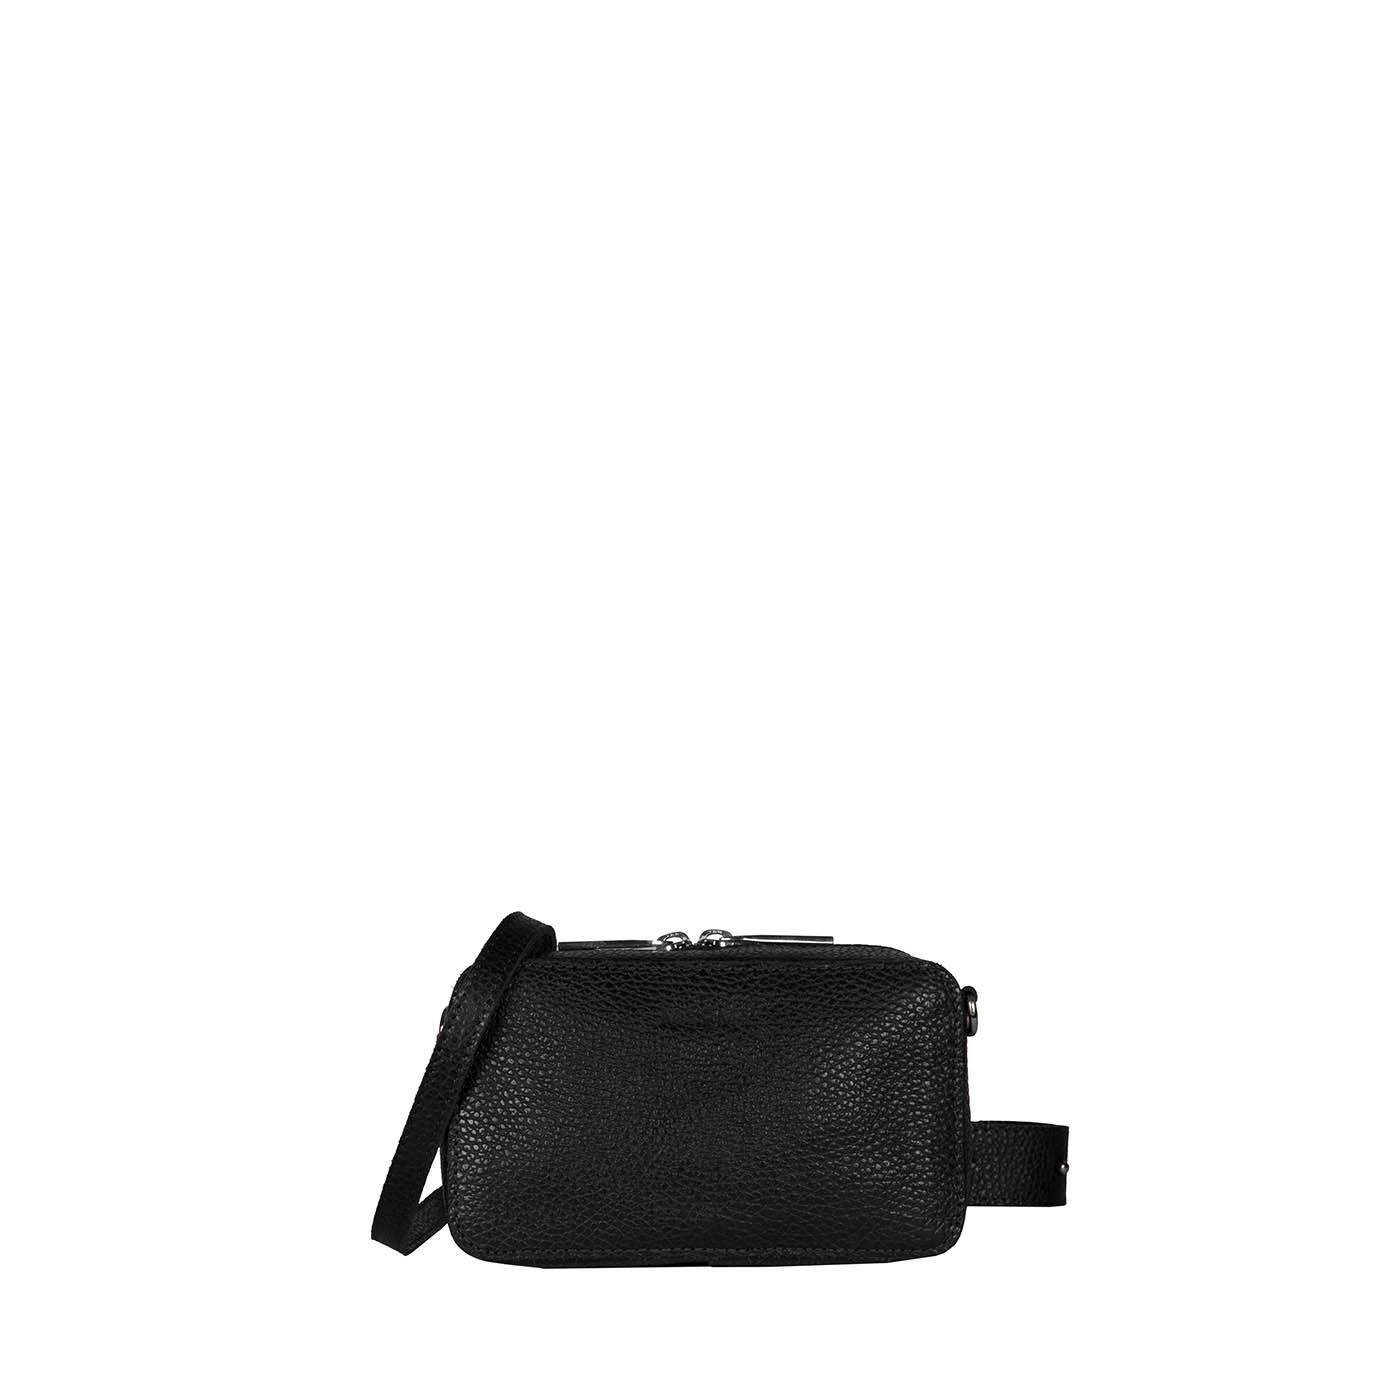 MY BOXY BAG Camera with belt – rambler black